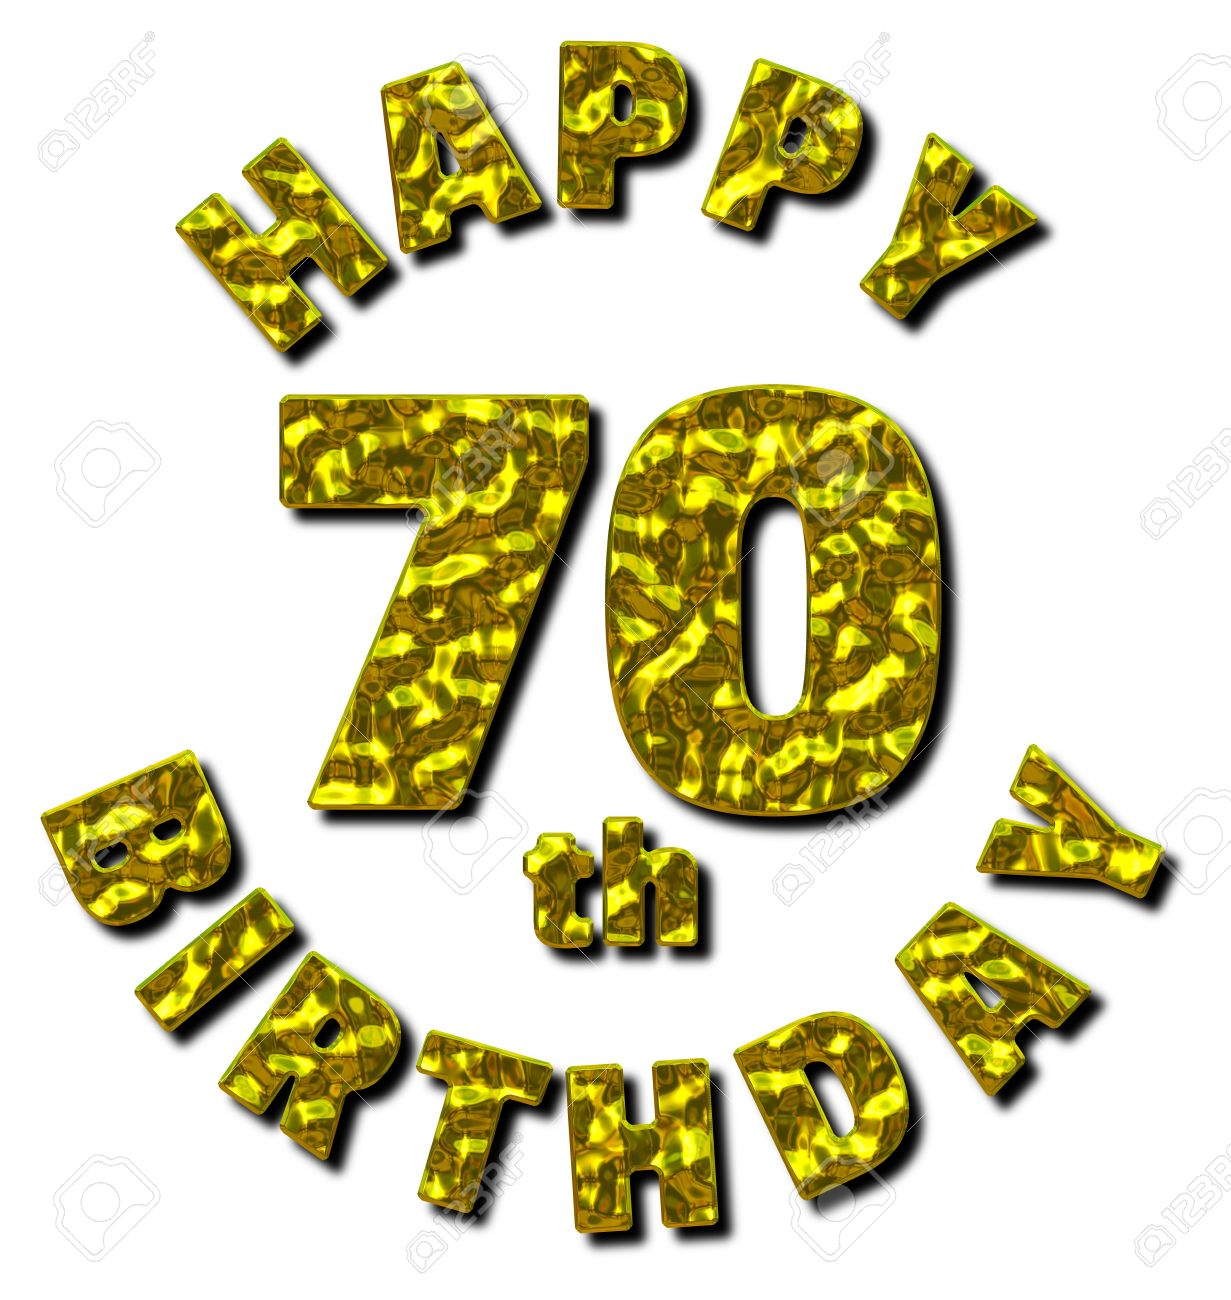 Happy 70th Birthday Message With A Golden Metallic Effect 3D Illustration On White Background Stock